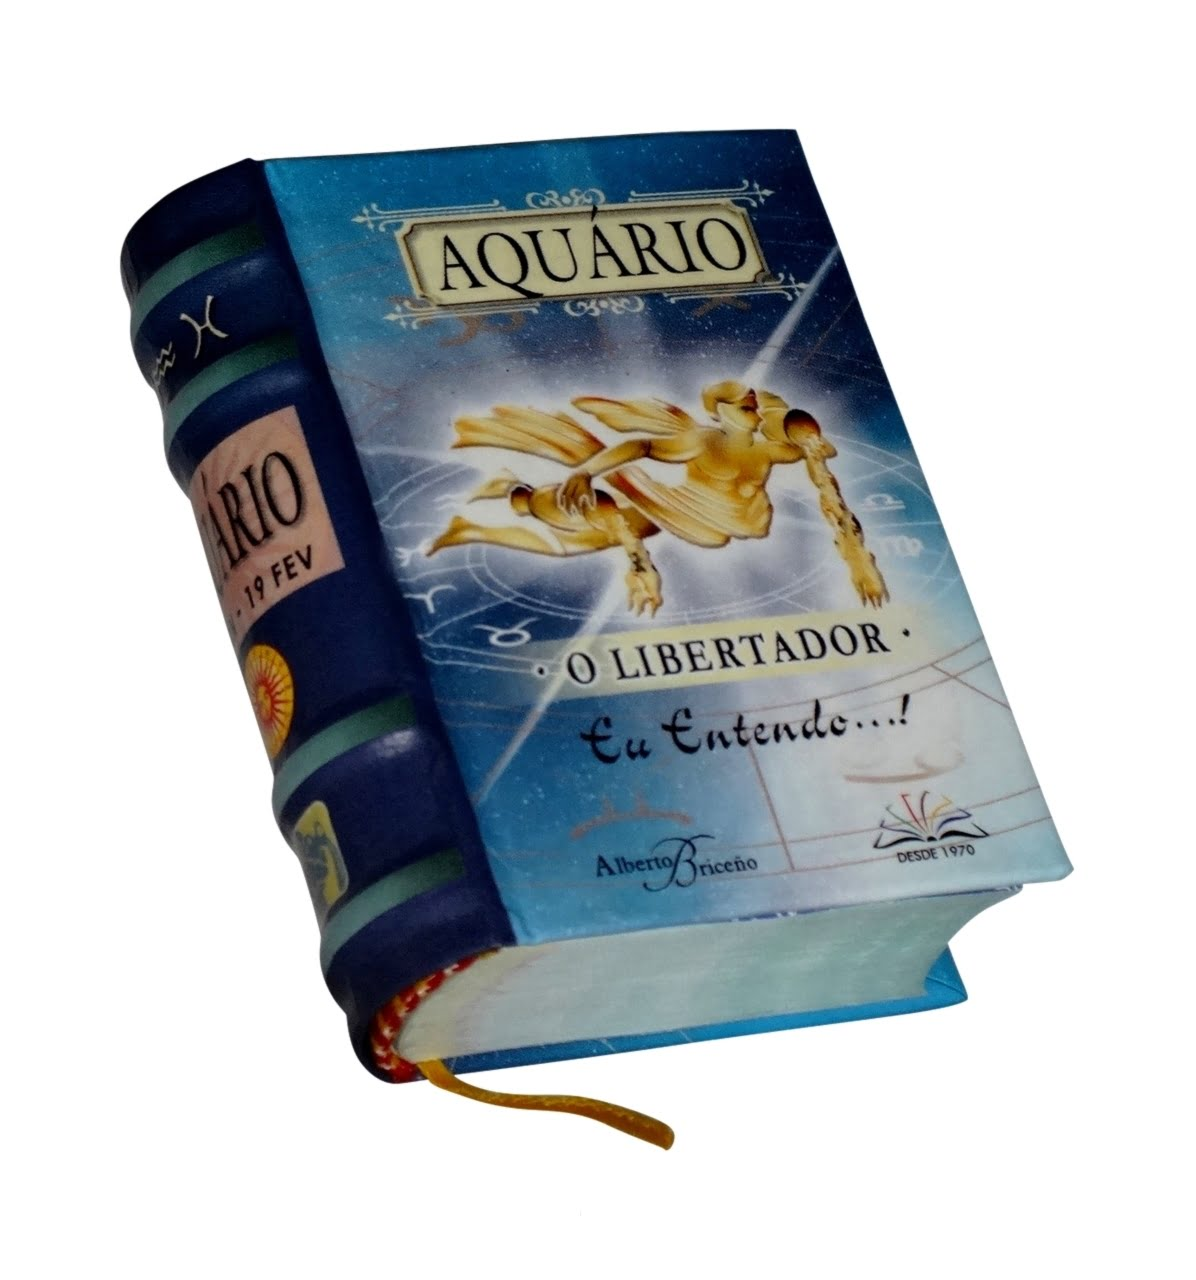 aquario_portugues-miniature-book-libro